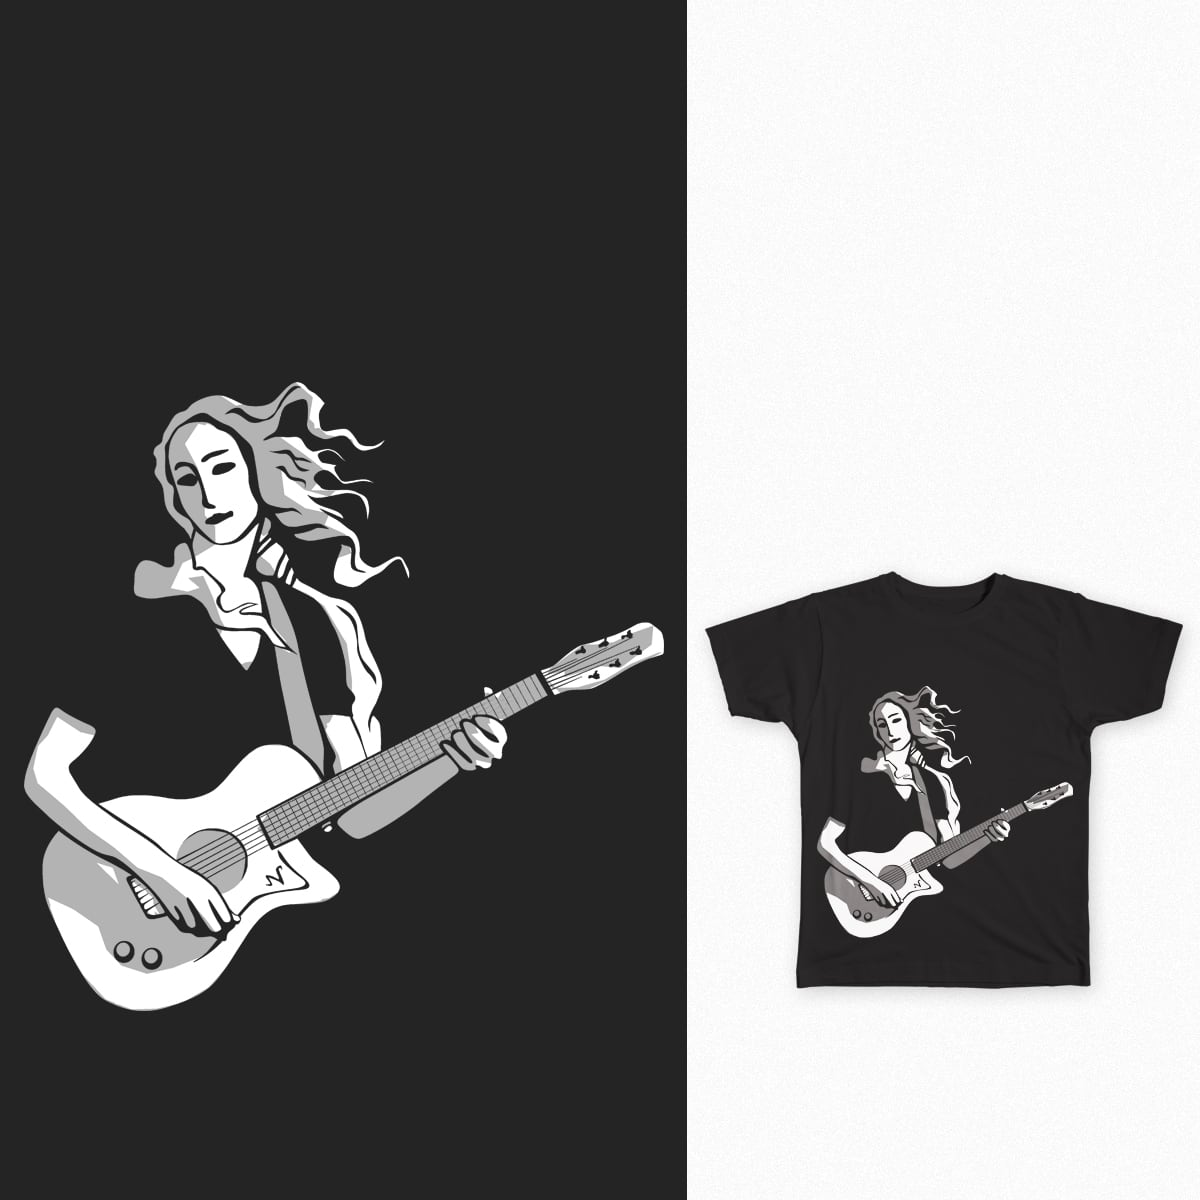 Venus playing guitar by bulo on Threadless